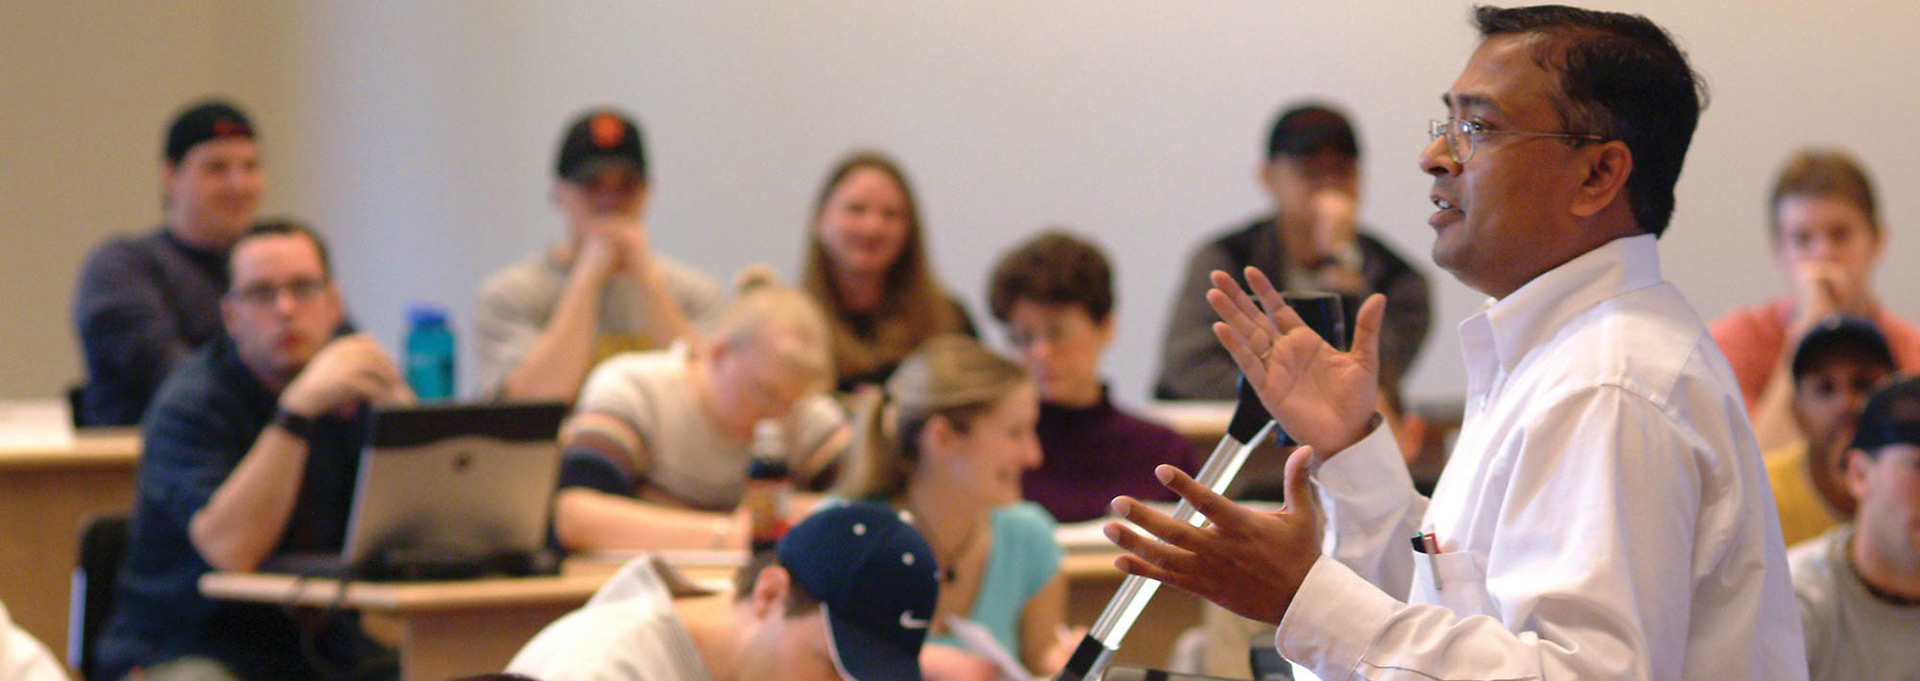 A professor addresses a classroom of students